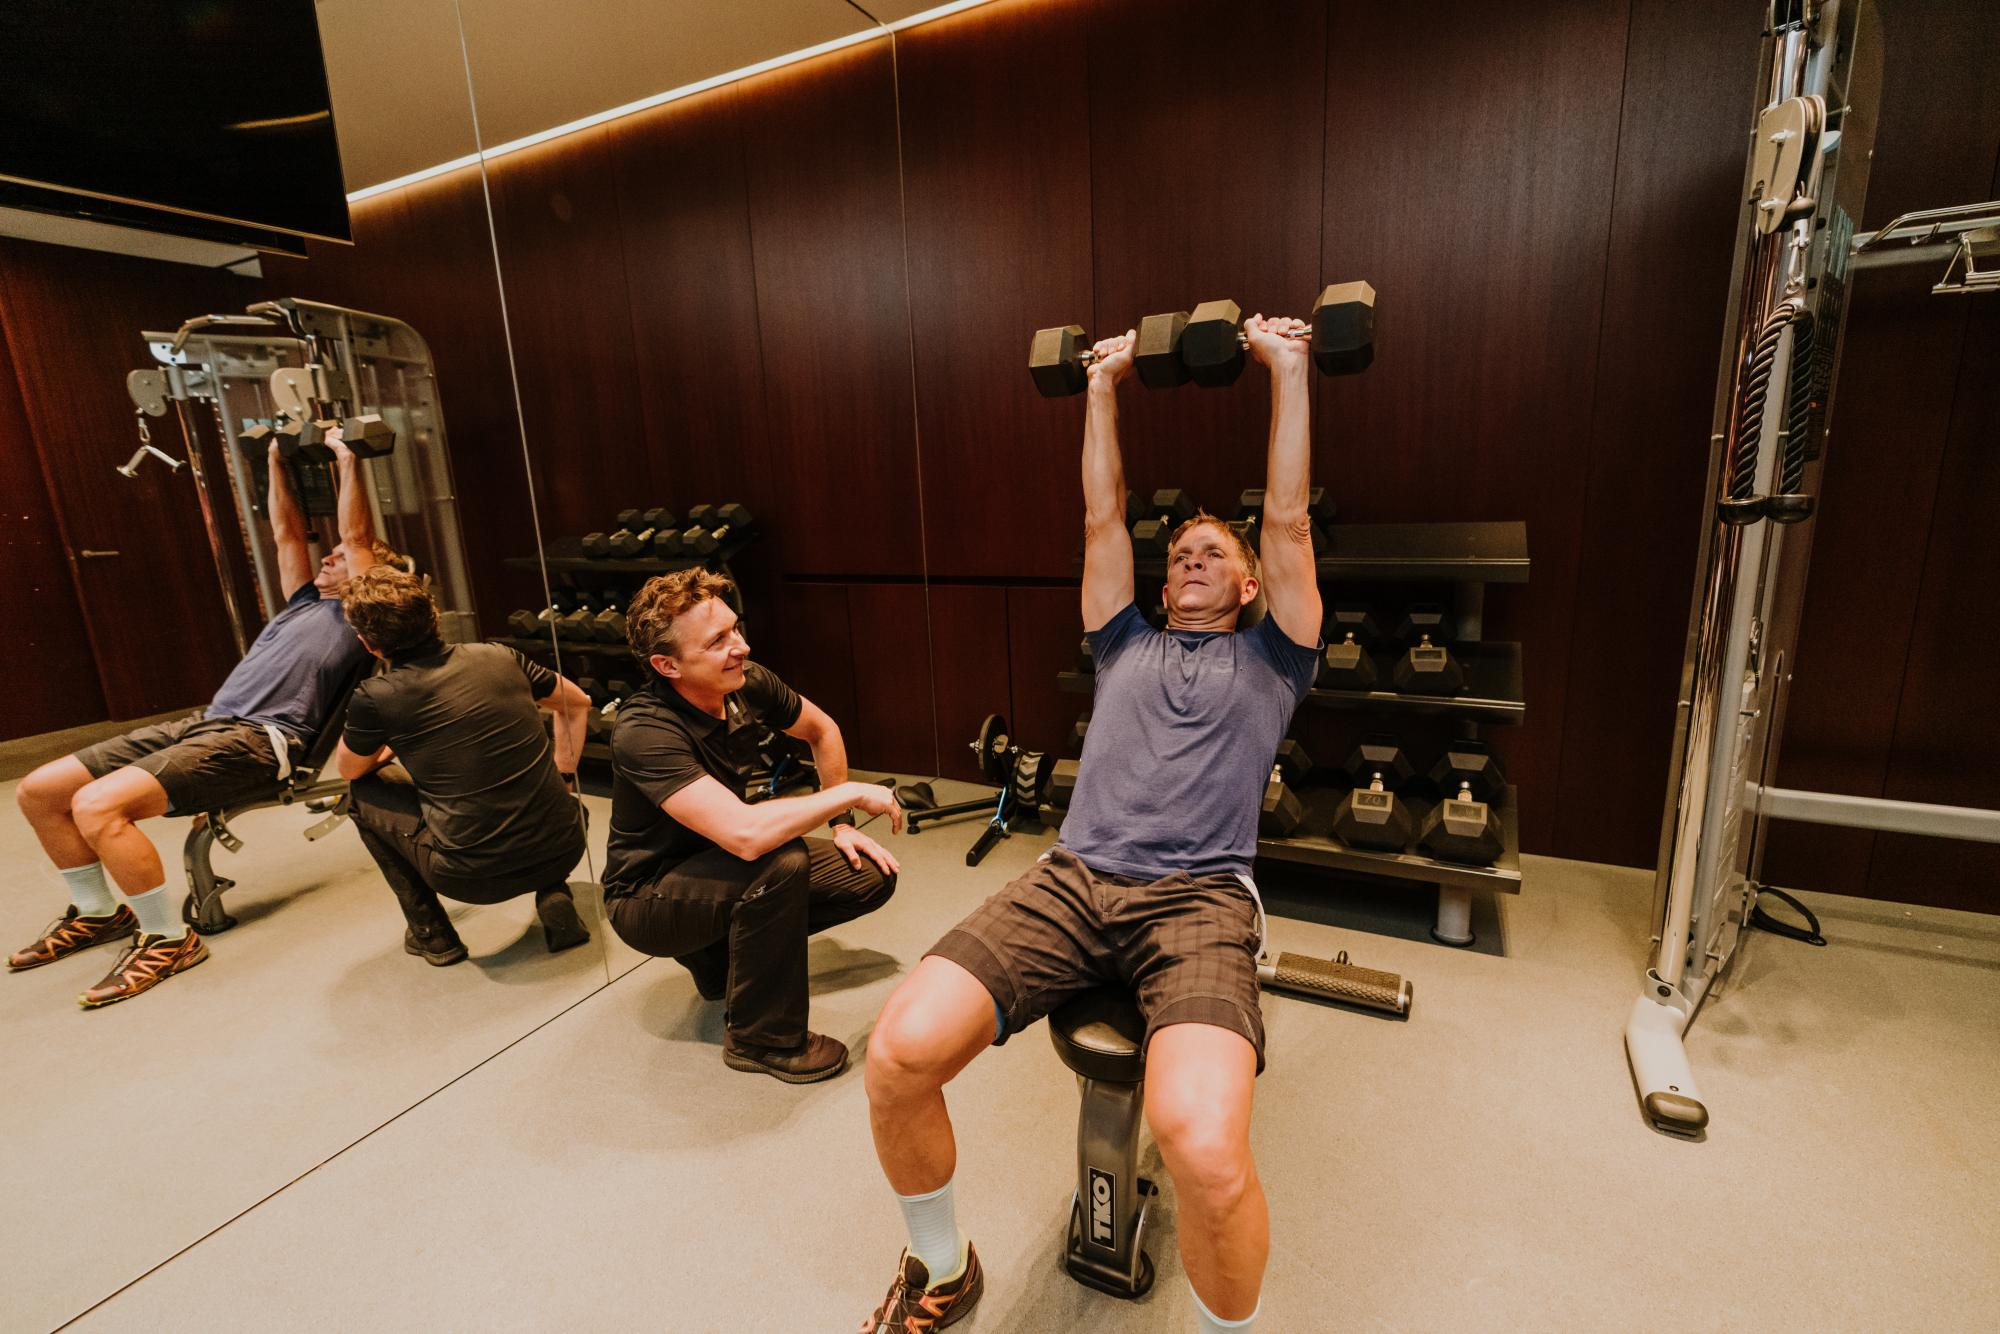 Personal Training in Aspin and Snowmass Village